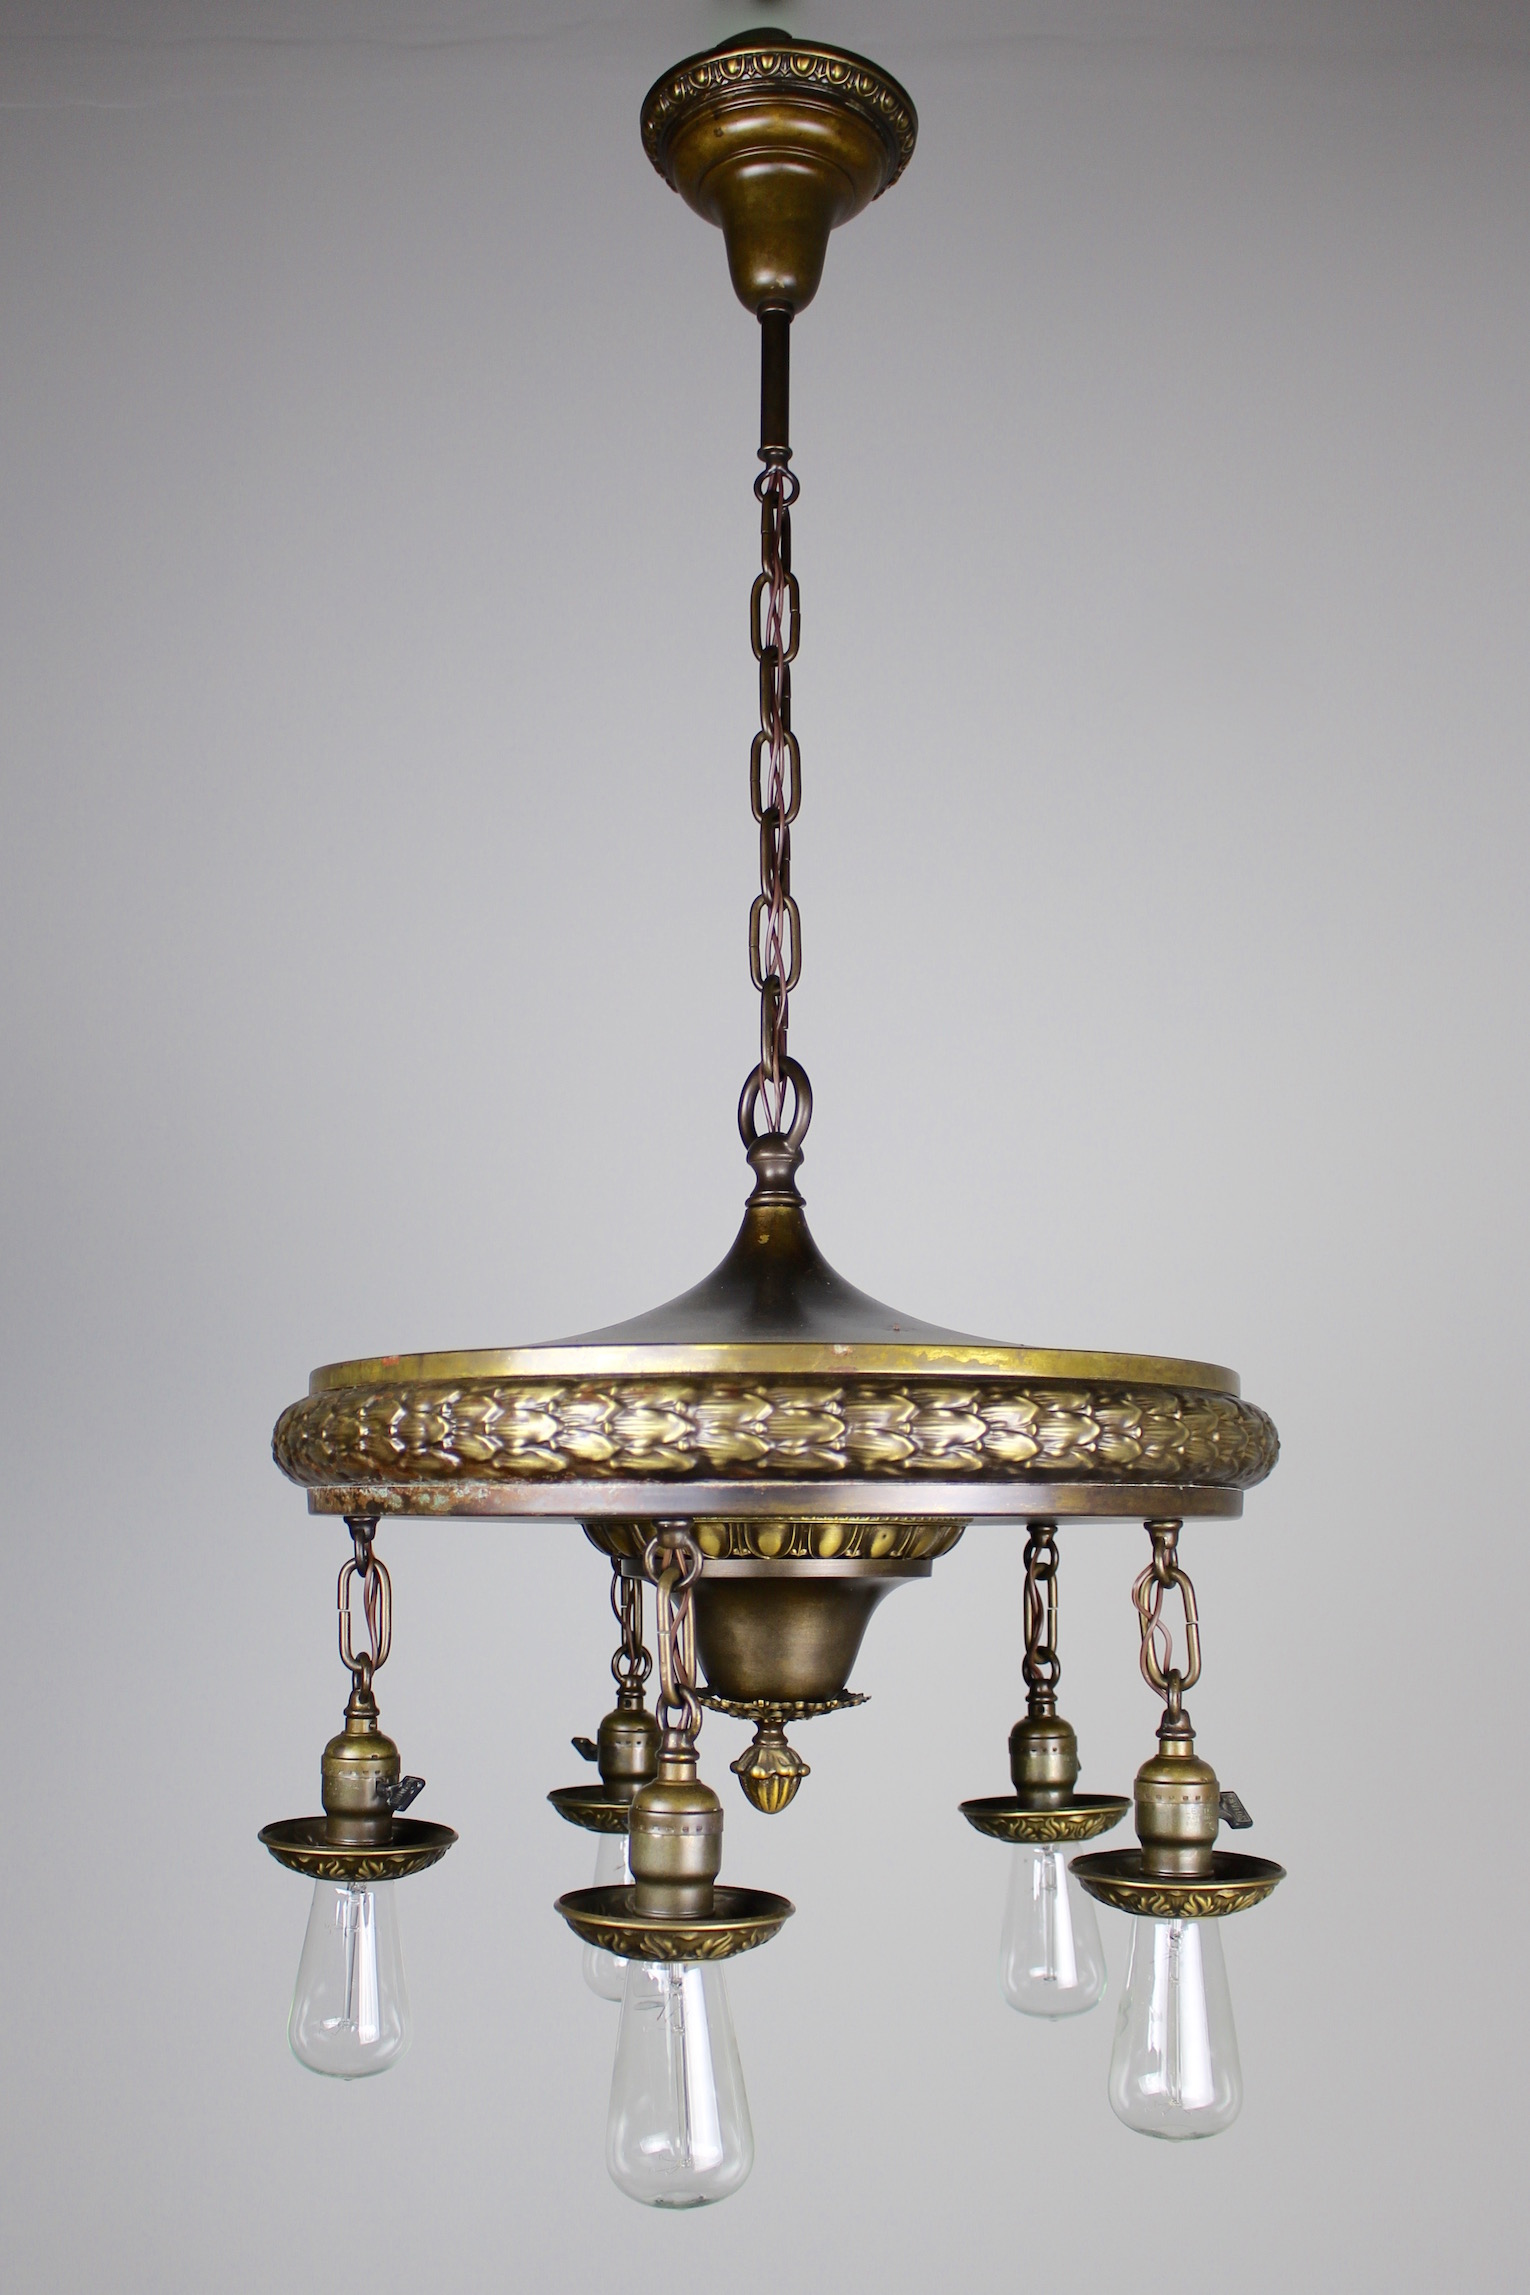 1920s Five Light Neoclassical Revival Dining Room Fixture